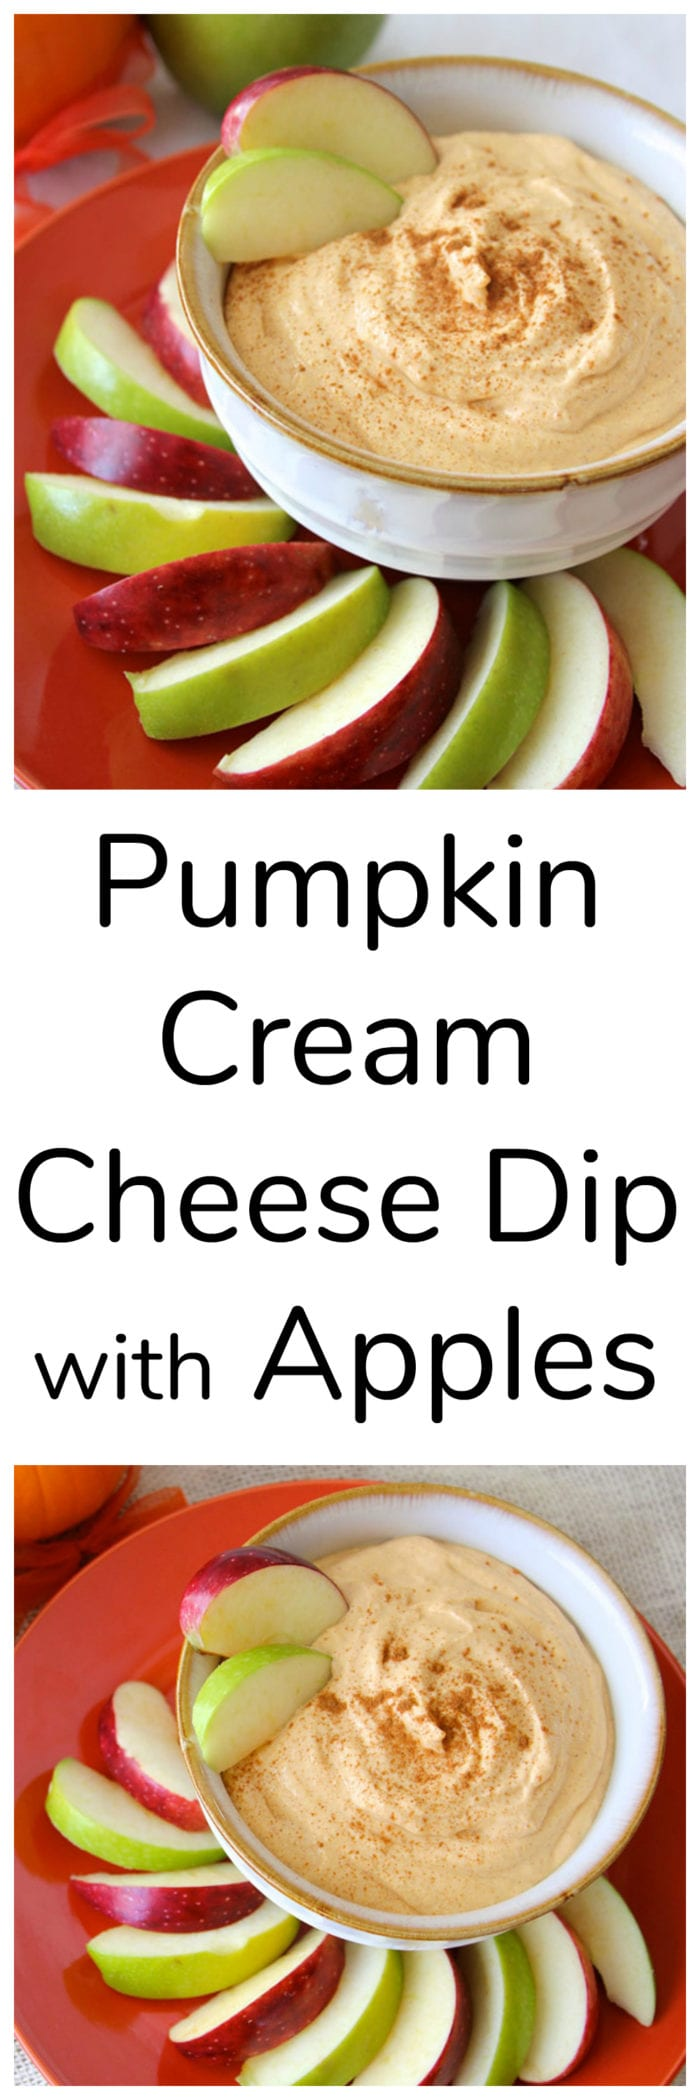 Pumpkin Cream Cheese Dip with Apples will bring a big smile to everyone at your table! www.cookingwithruthie.com